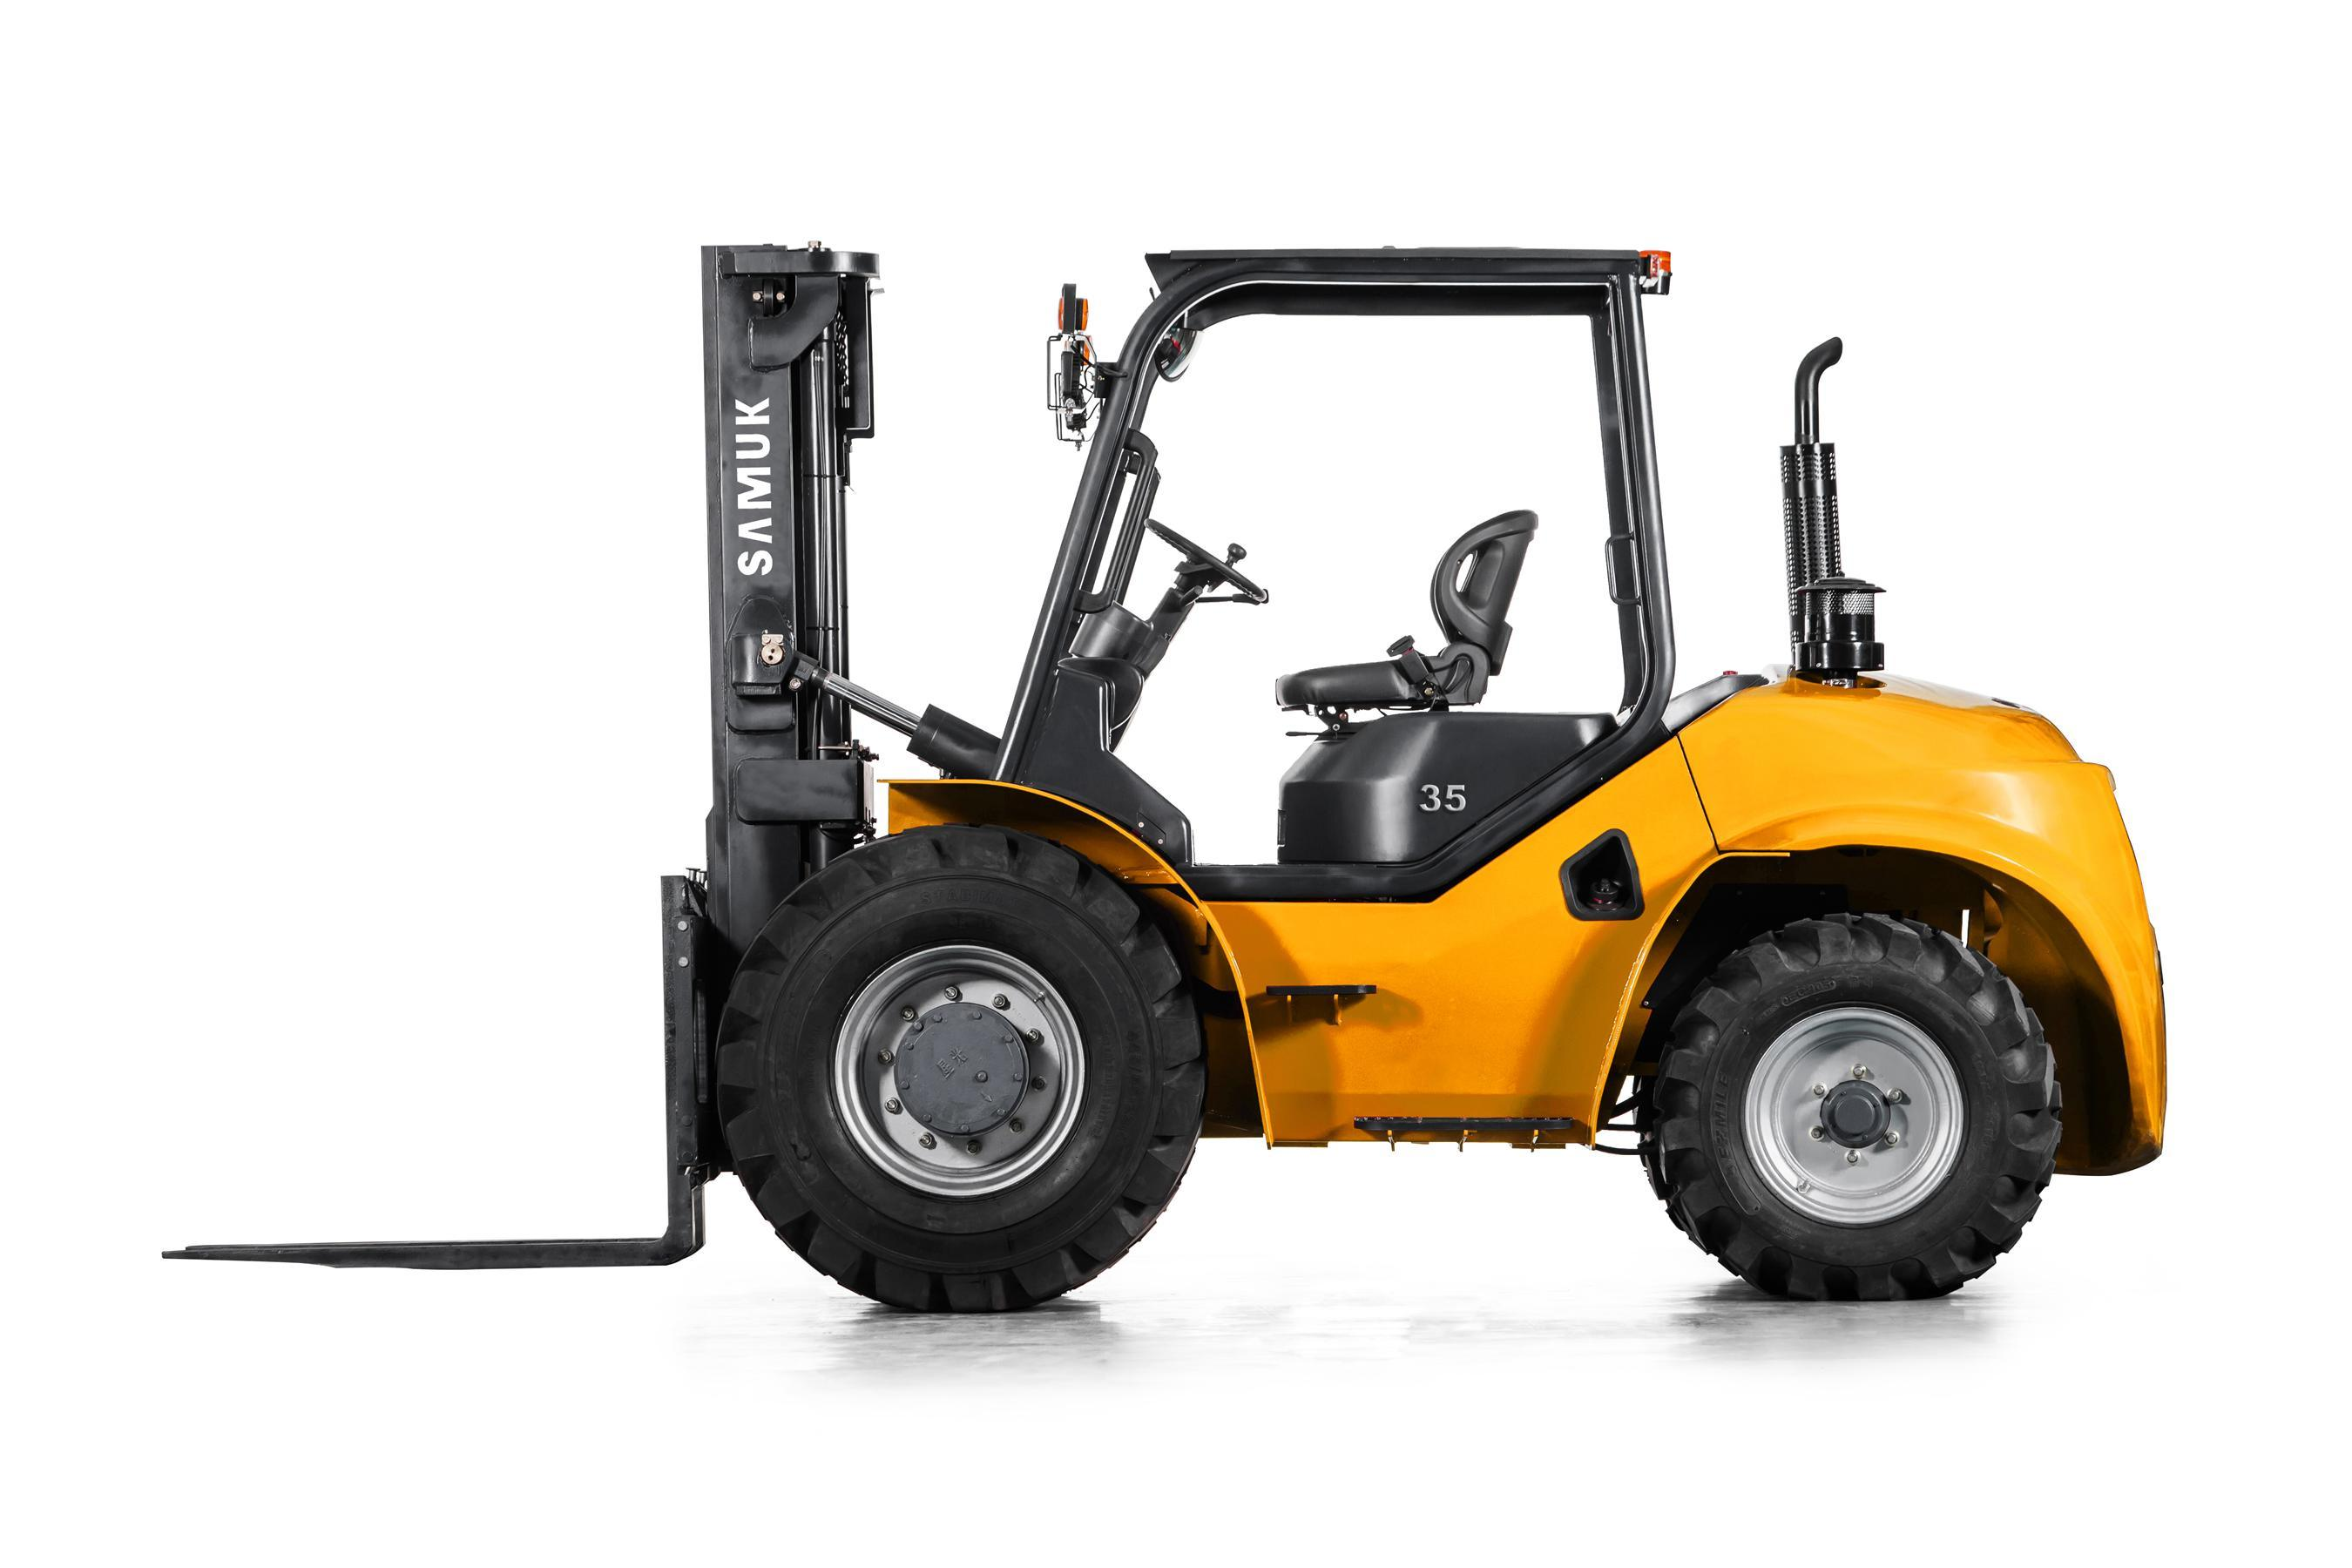 2WD Rough Terrain All Terrain Forklift 1.8-3.5ton